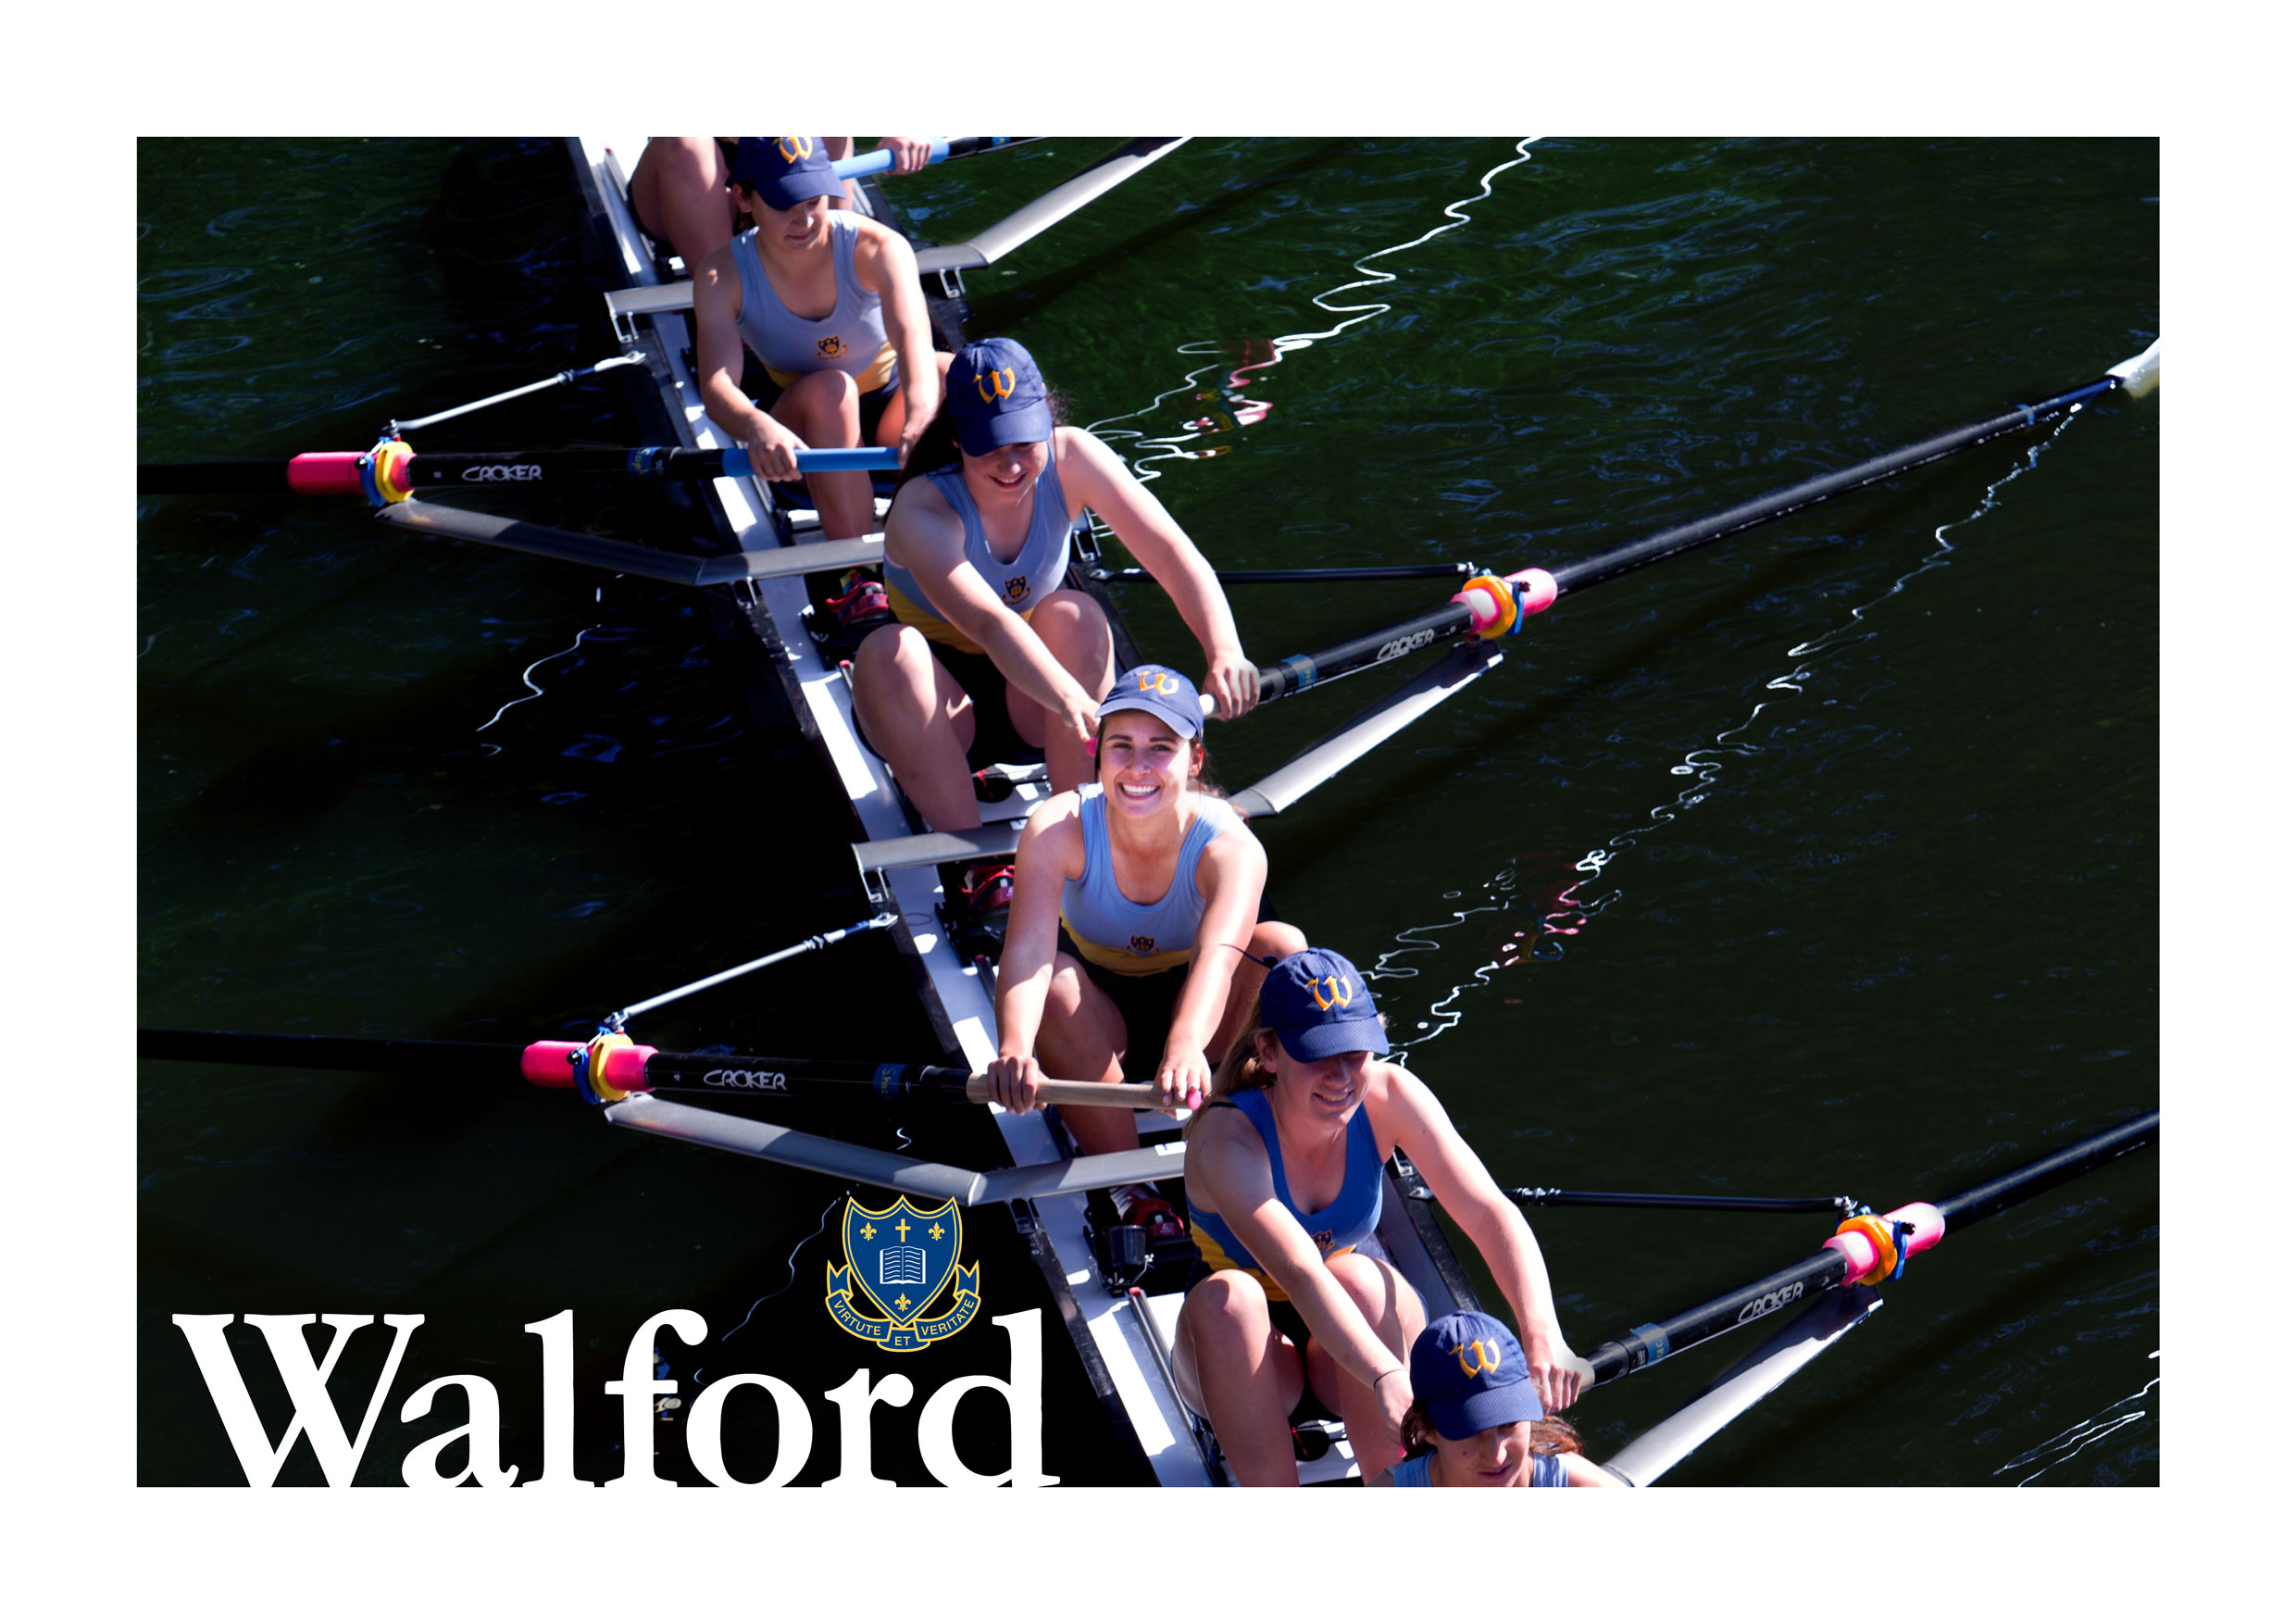 WALFORD-BRANDING-IMAGES_10